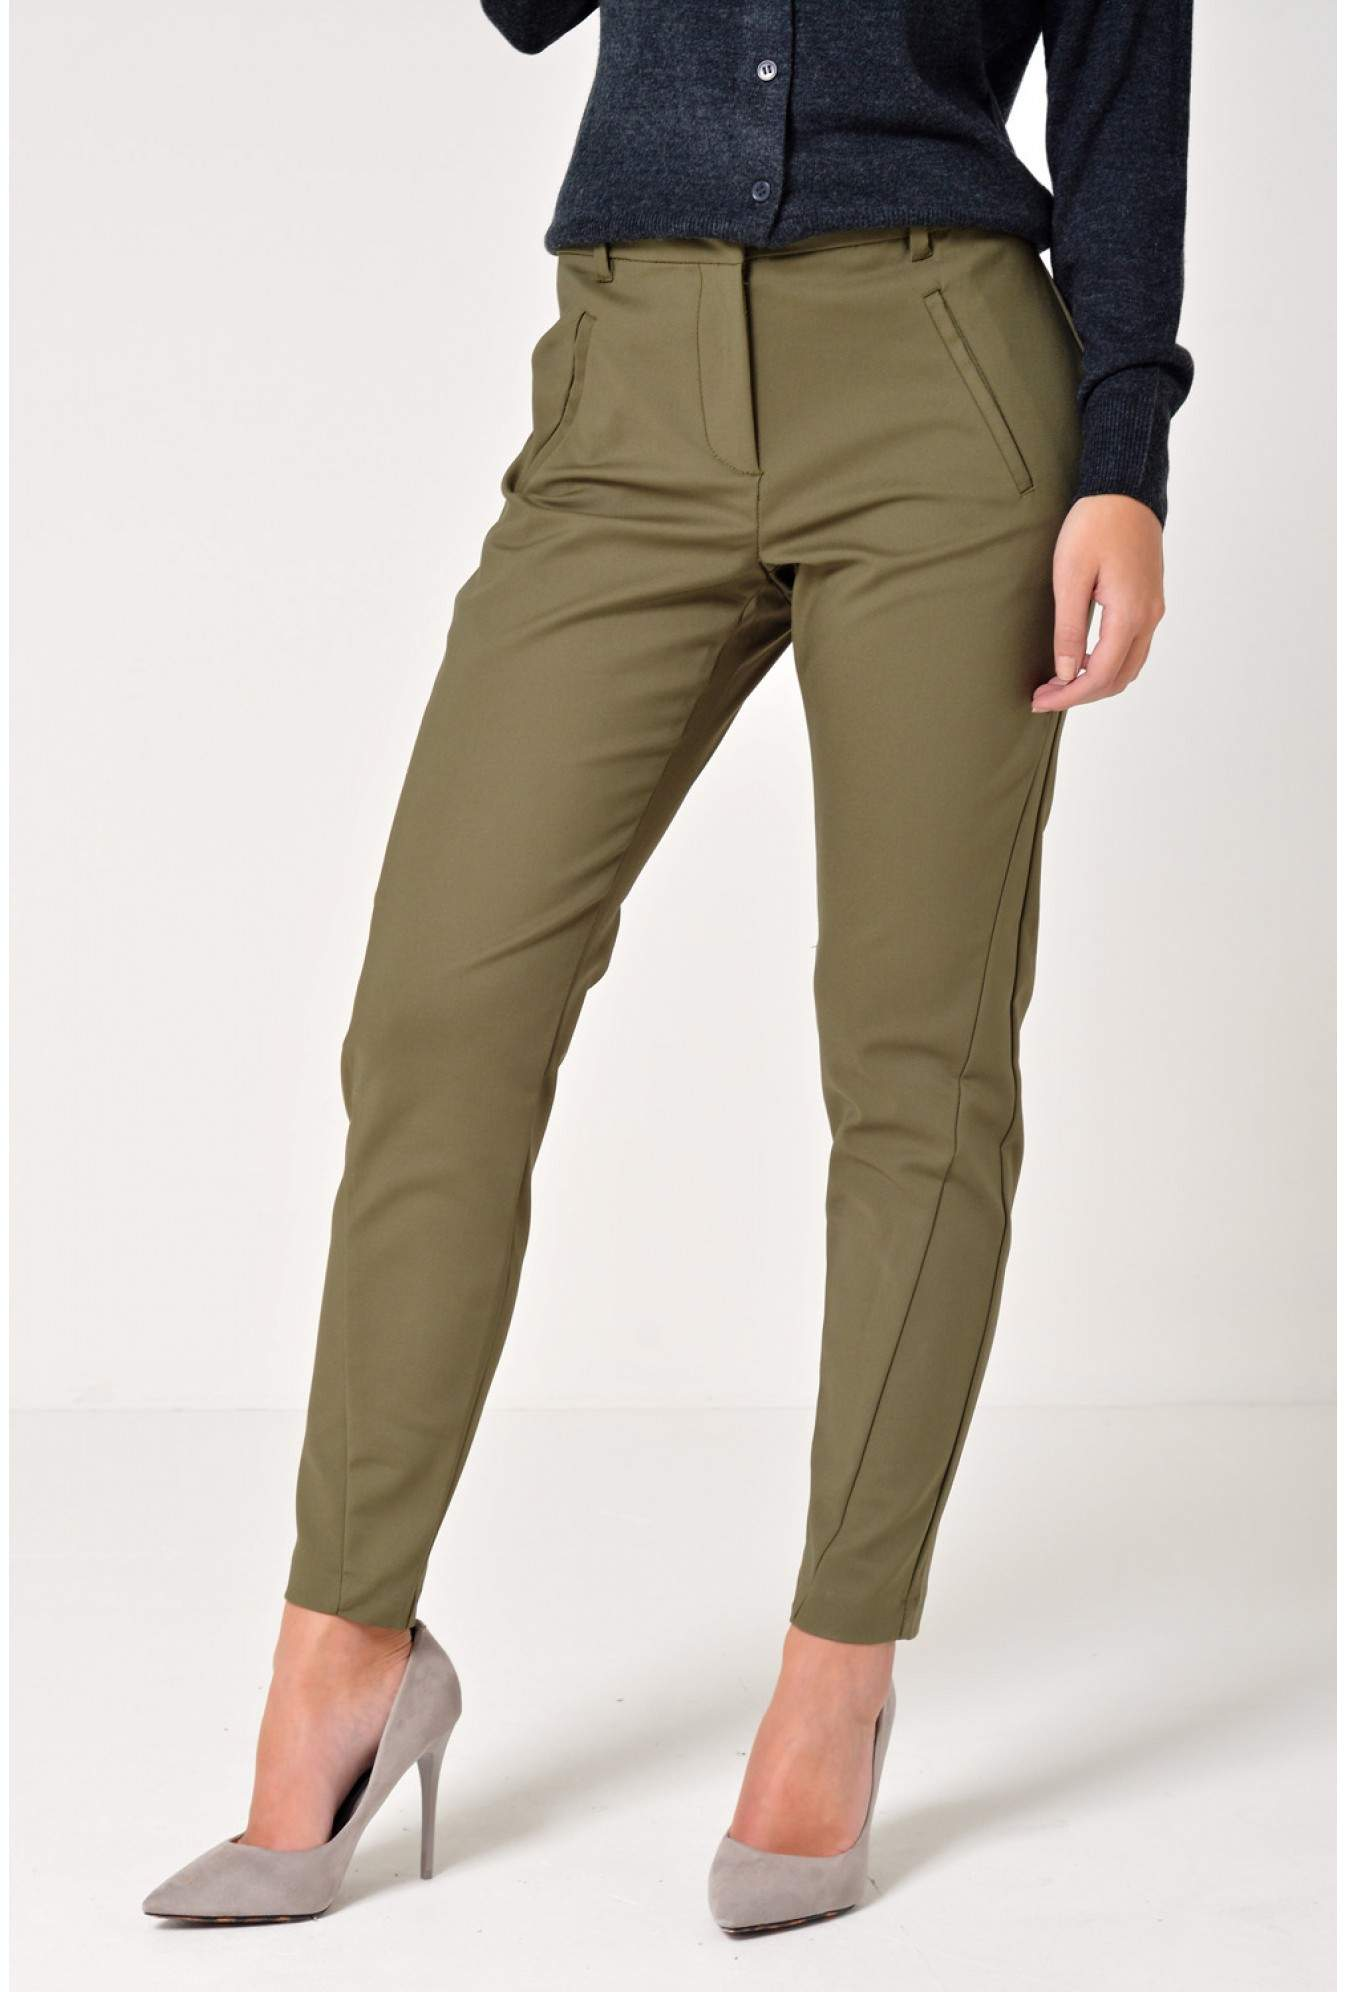 More Views. Victoria Short Ankle Pants in Khaki. Vero Moda 1456290ad22a